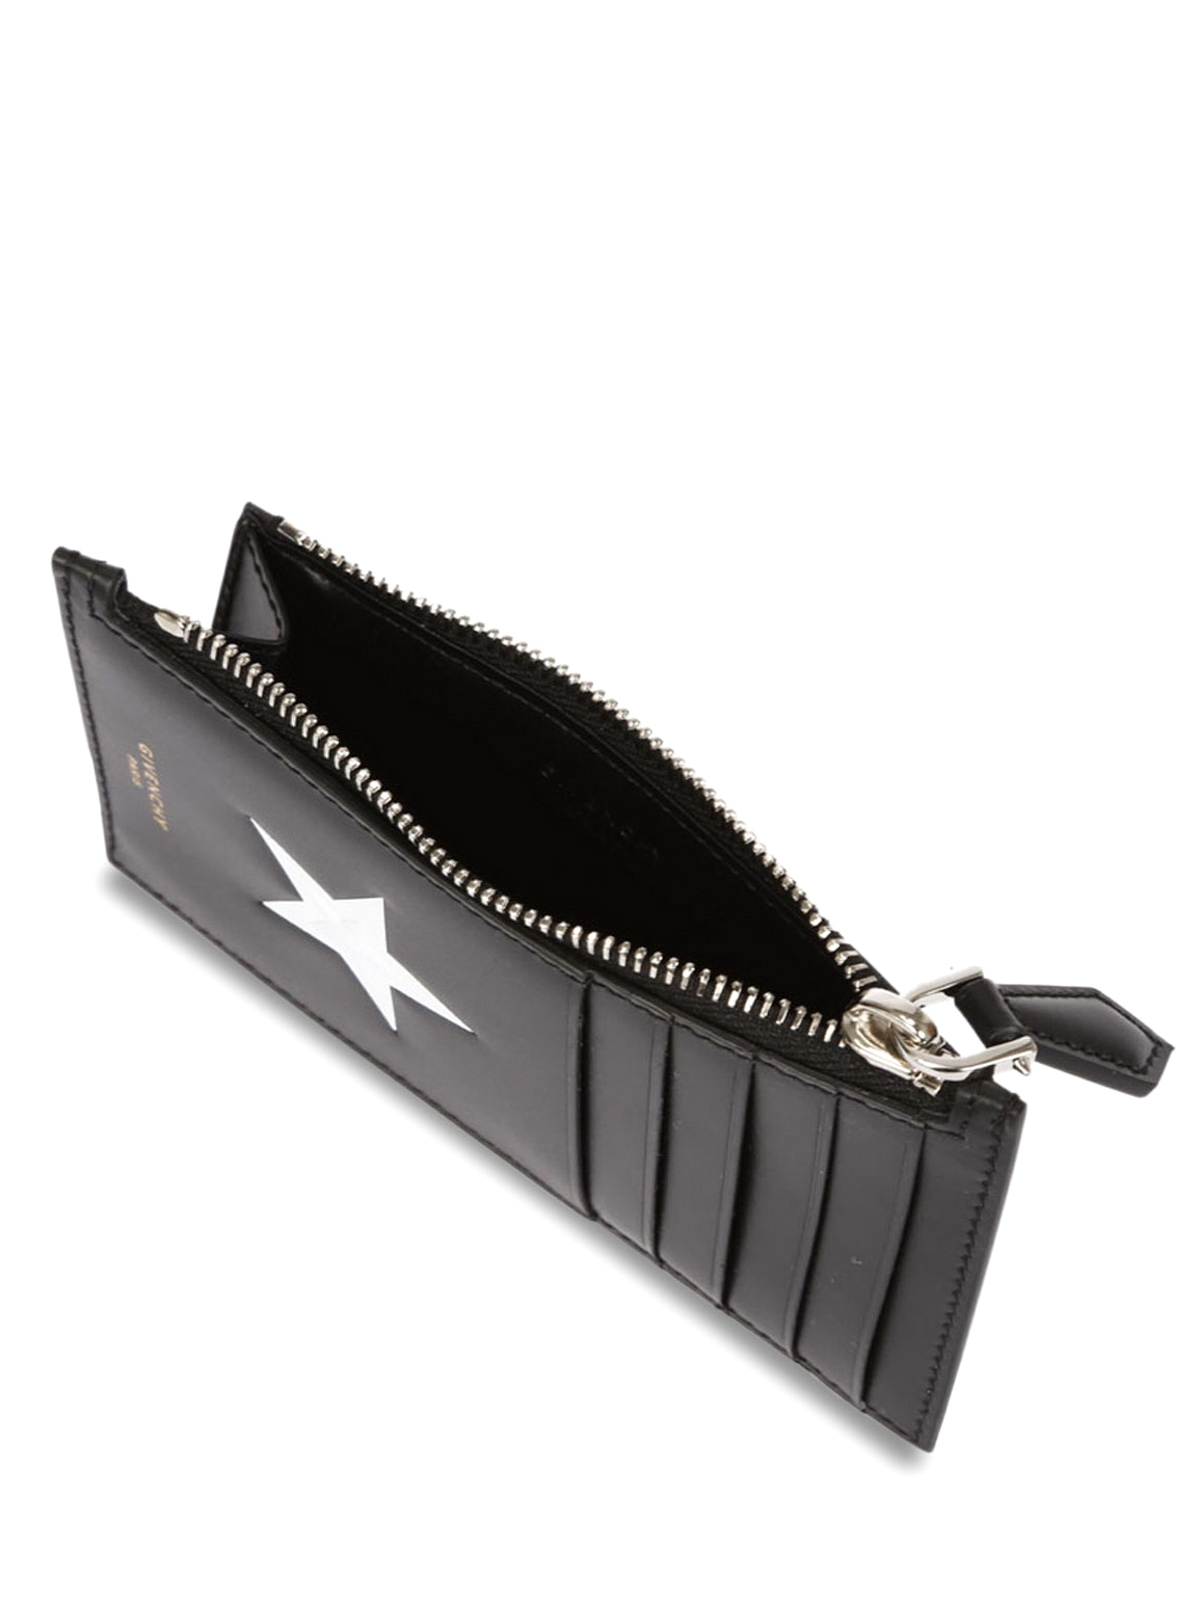 acaa3fa1624d Star print card holder shop online: GIVENCHY. GIVENCHY: wallets & purses ...